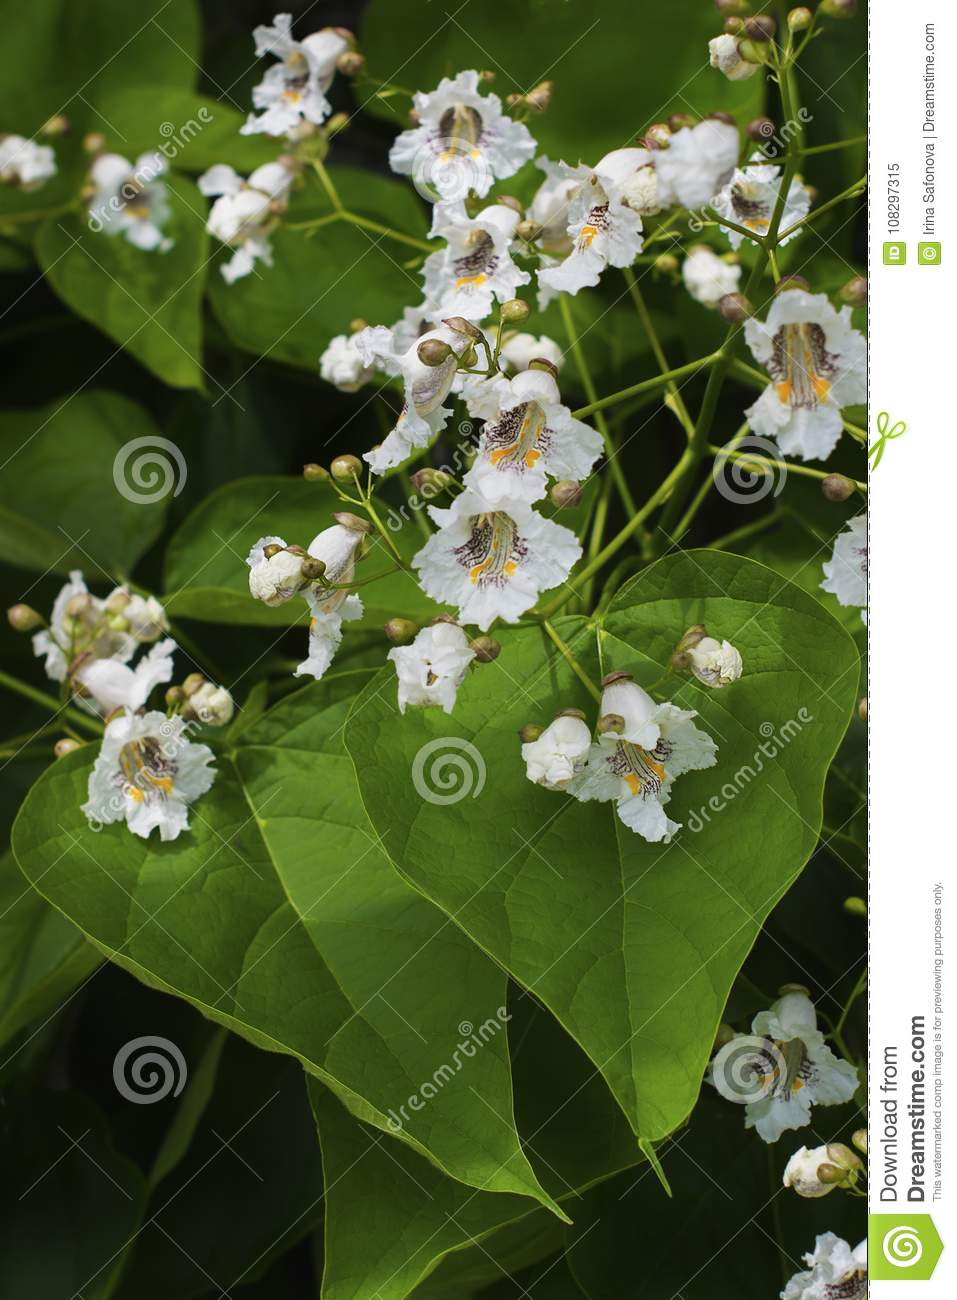 Close up of indian bean tree flowers catalpa bignonioides stock the lovely white flowers and leaves of catalpa indian bean tree against a background mightylinksfo